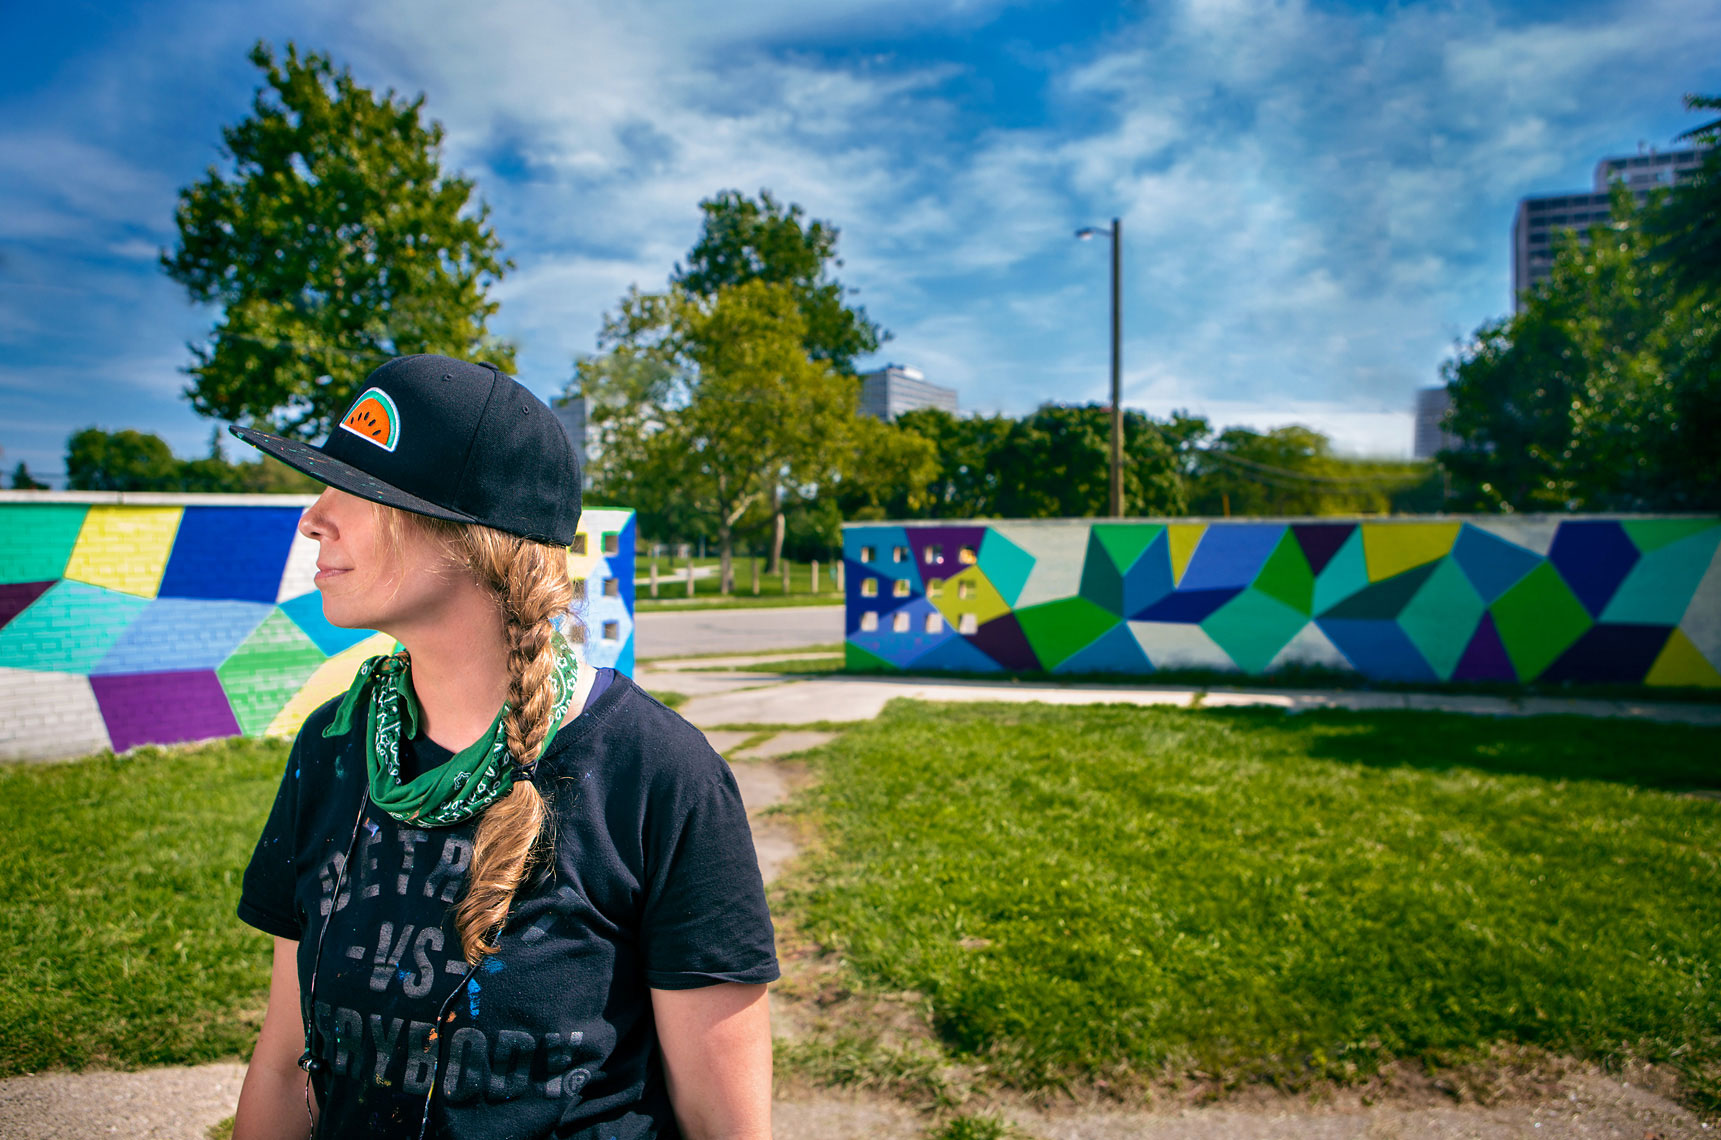 detroit-environmental-portrait-of-artist-muralist-kristin-farr-photographer-scott-stewart